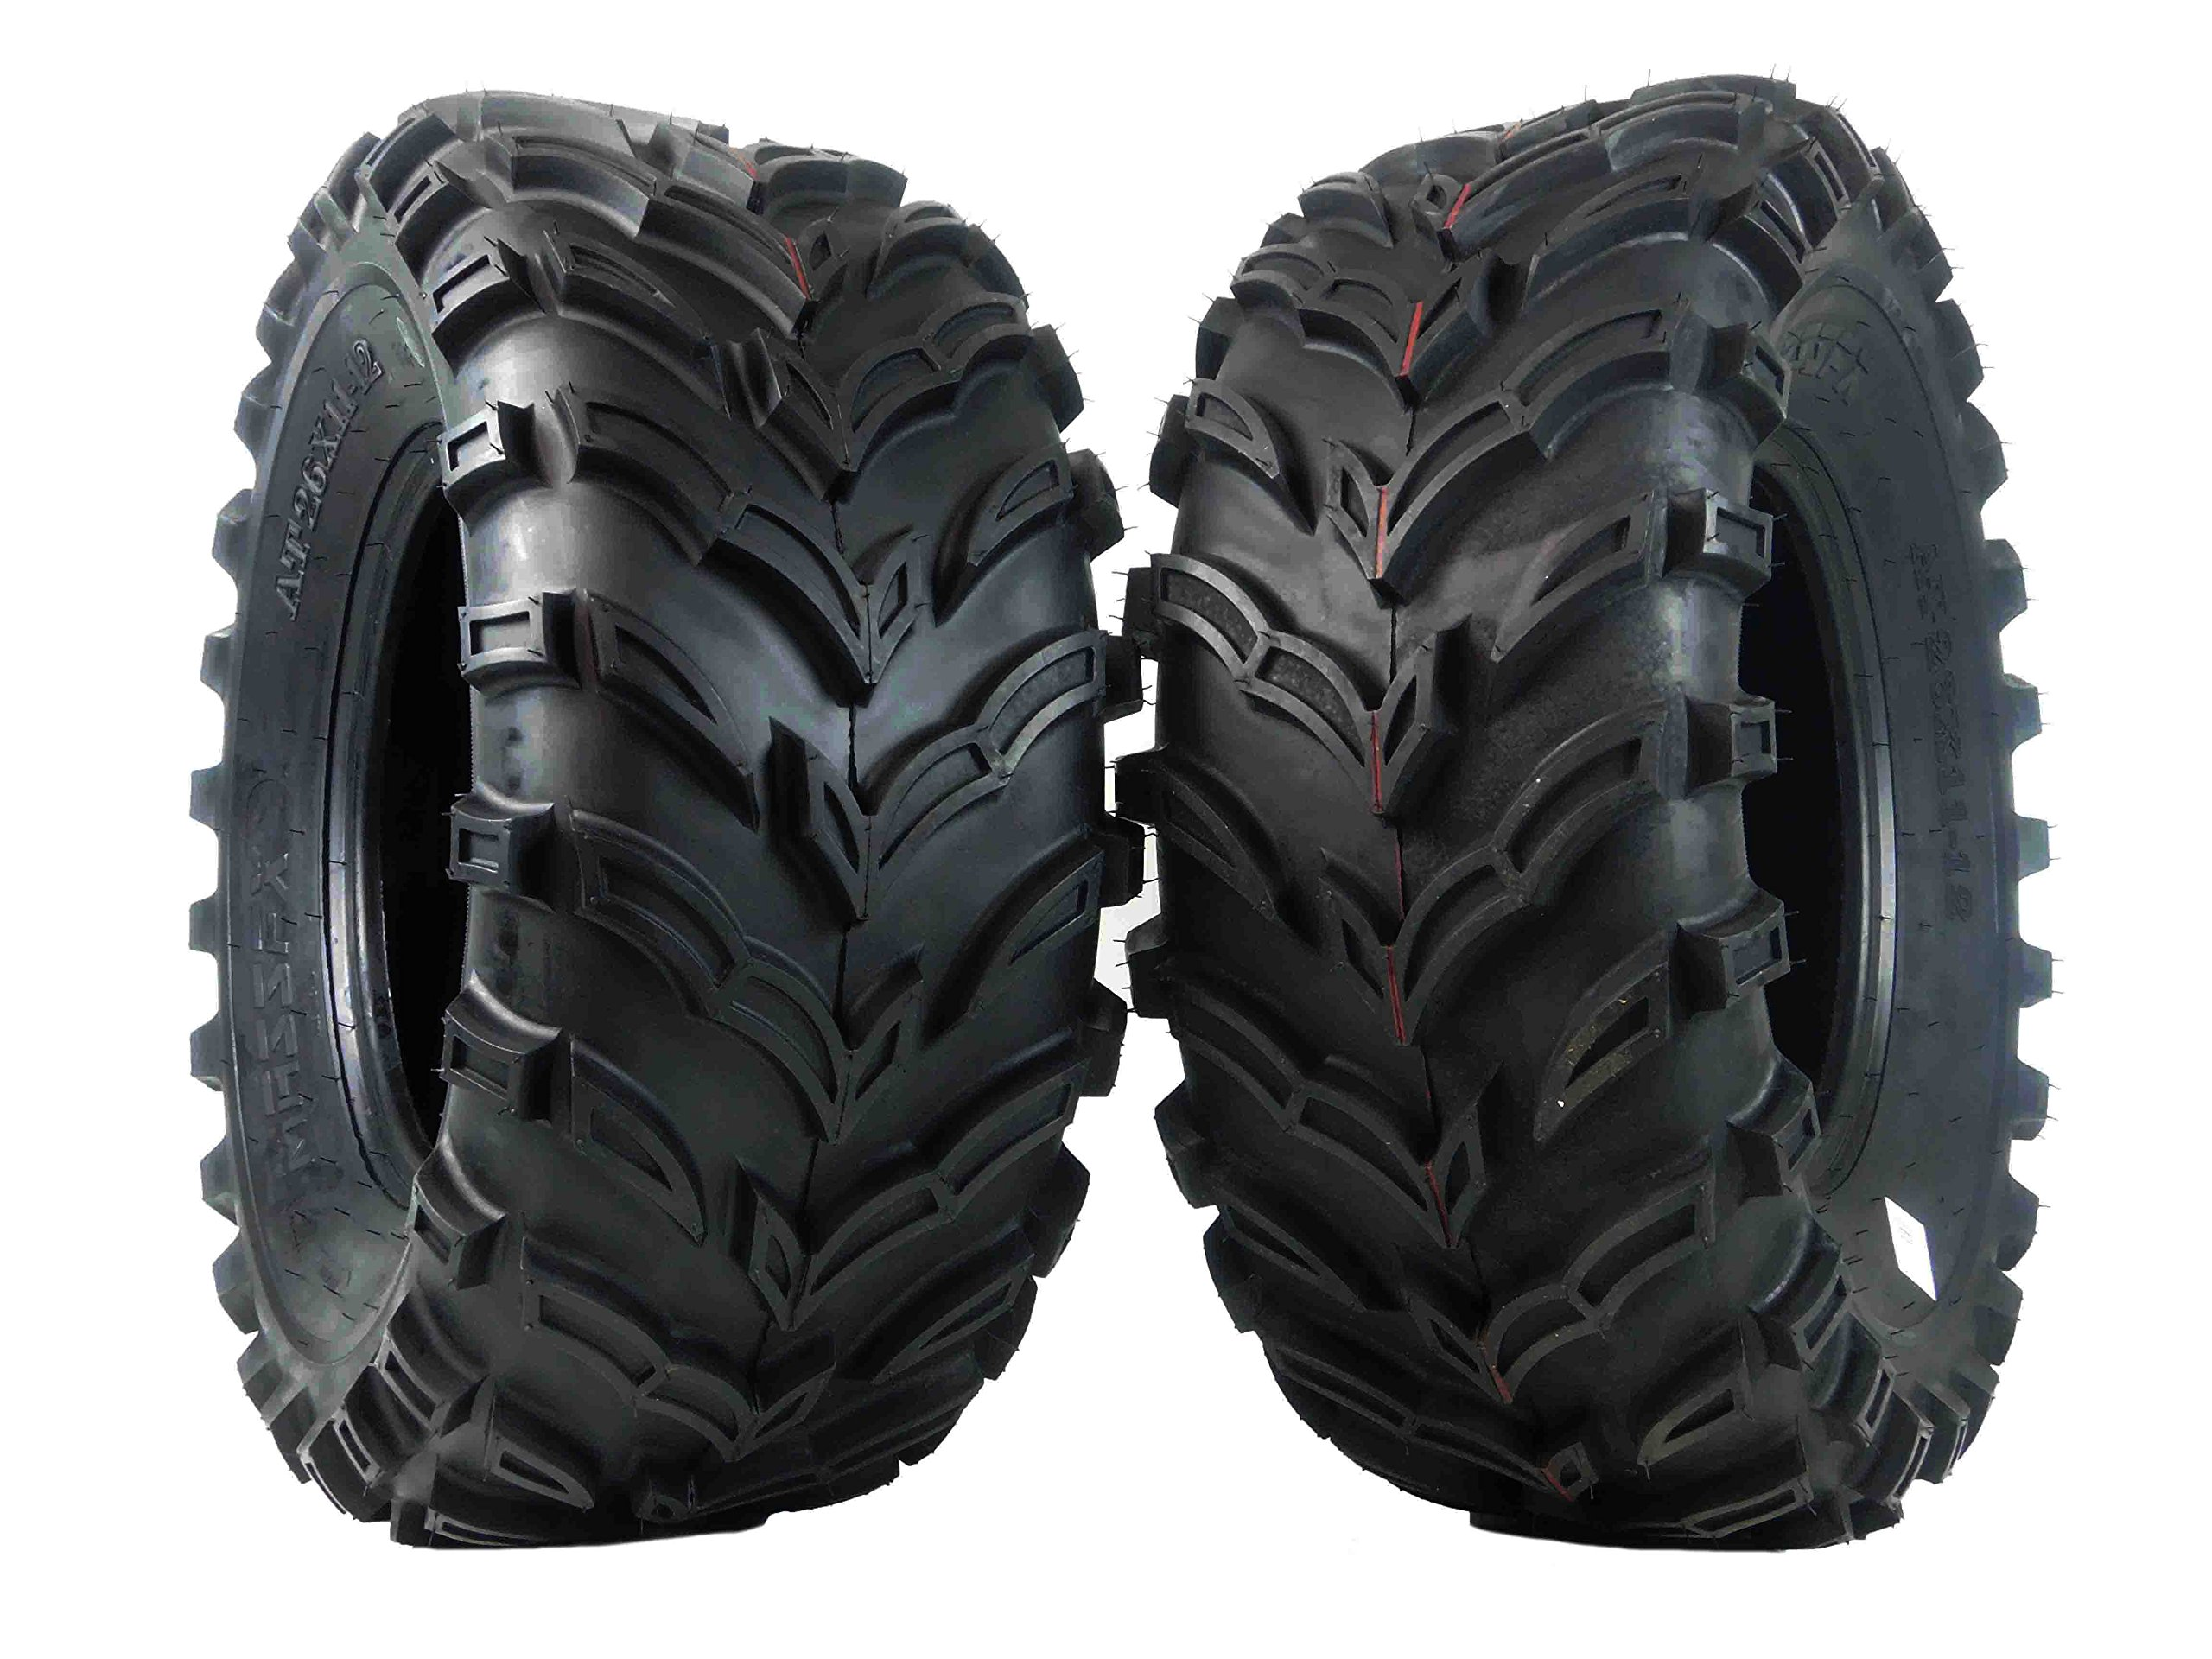 New MASSFX MS ATV/UTV Tires 26 x11-12 Rear, Set of 2 26x11x12 26x11/12